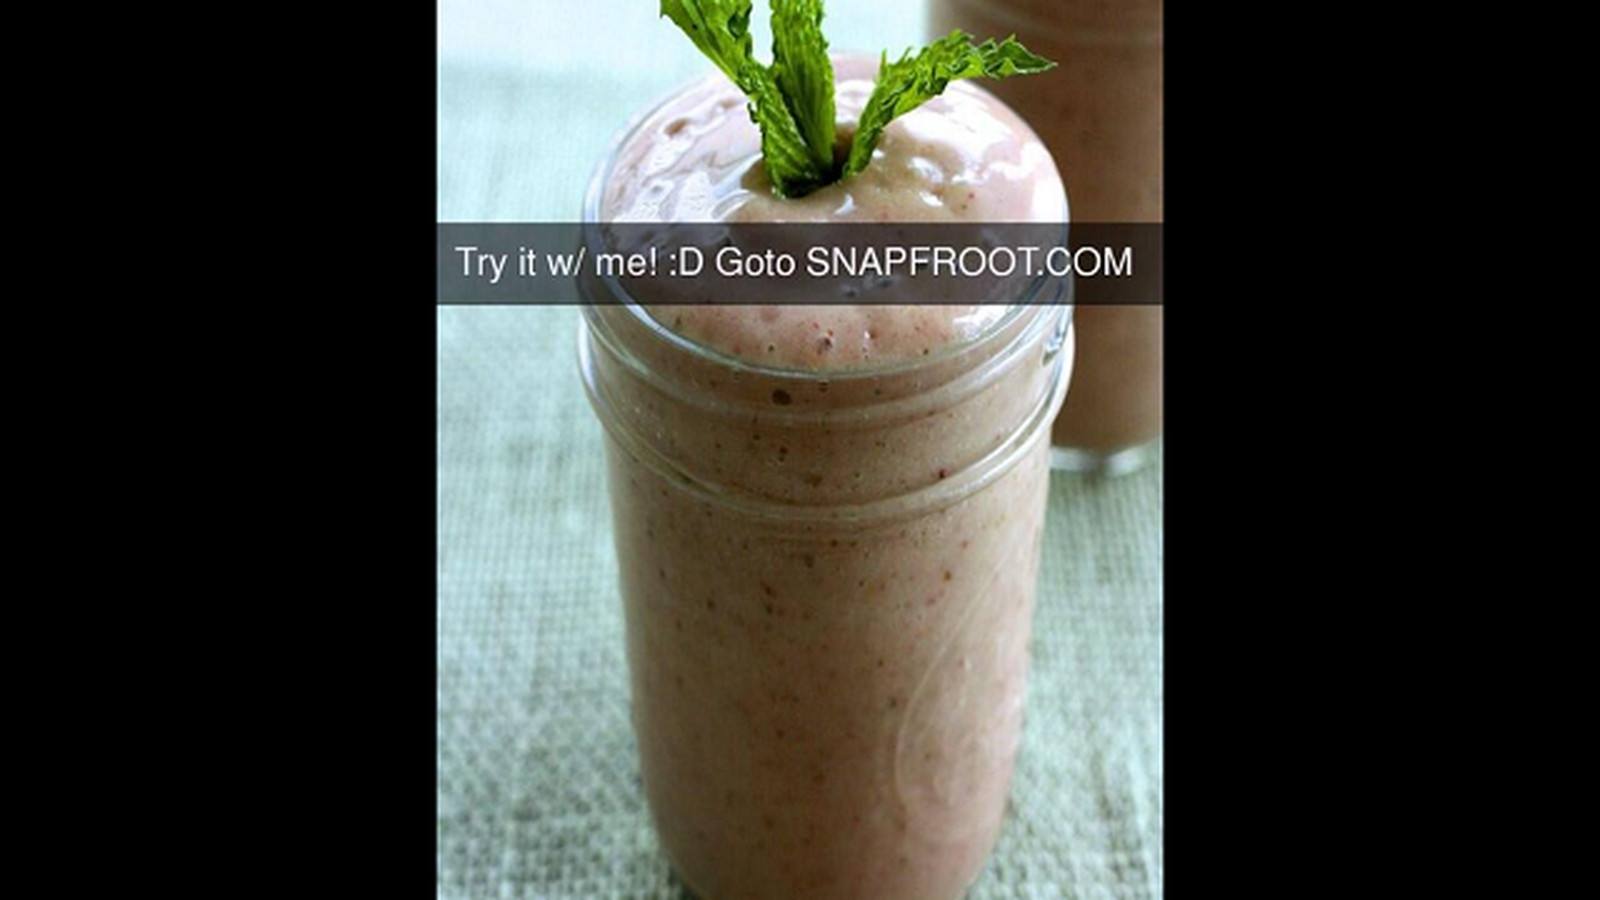 Snapchat Hack Sends People Pictures Of Smoothies - The Verge